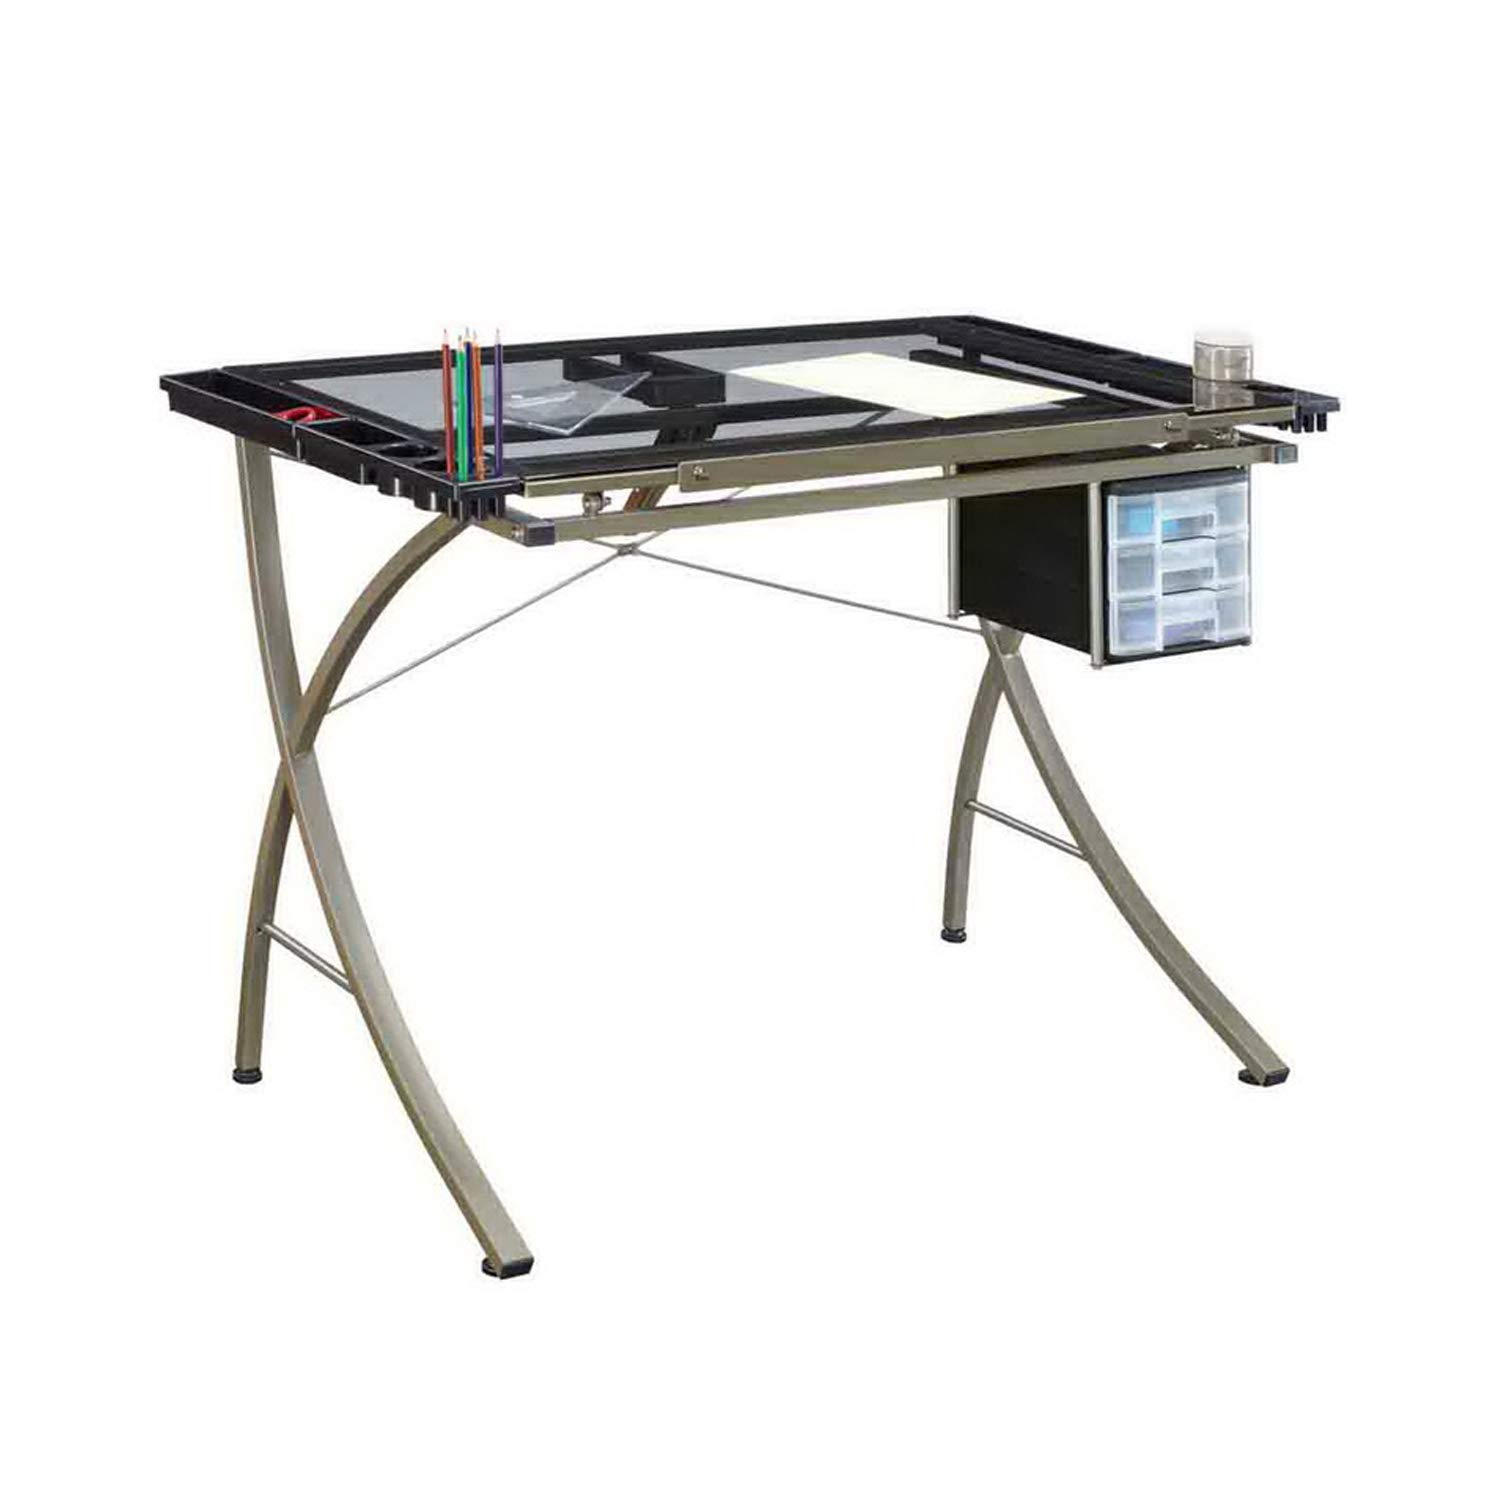 Office Drafting Table Art Drawing Adjustable Craft Work Station with 3 Slide Drawer for Storage, 35'' x 24'' Tempered Glass Top